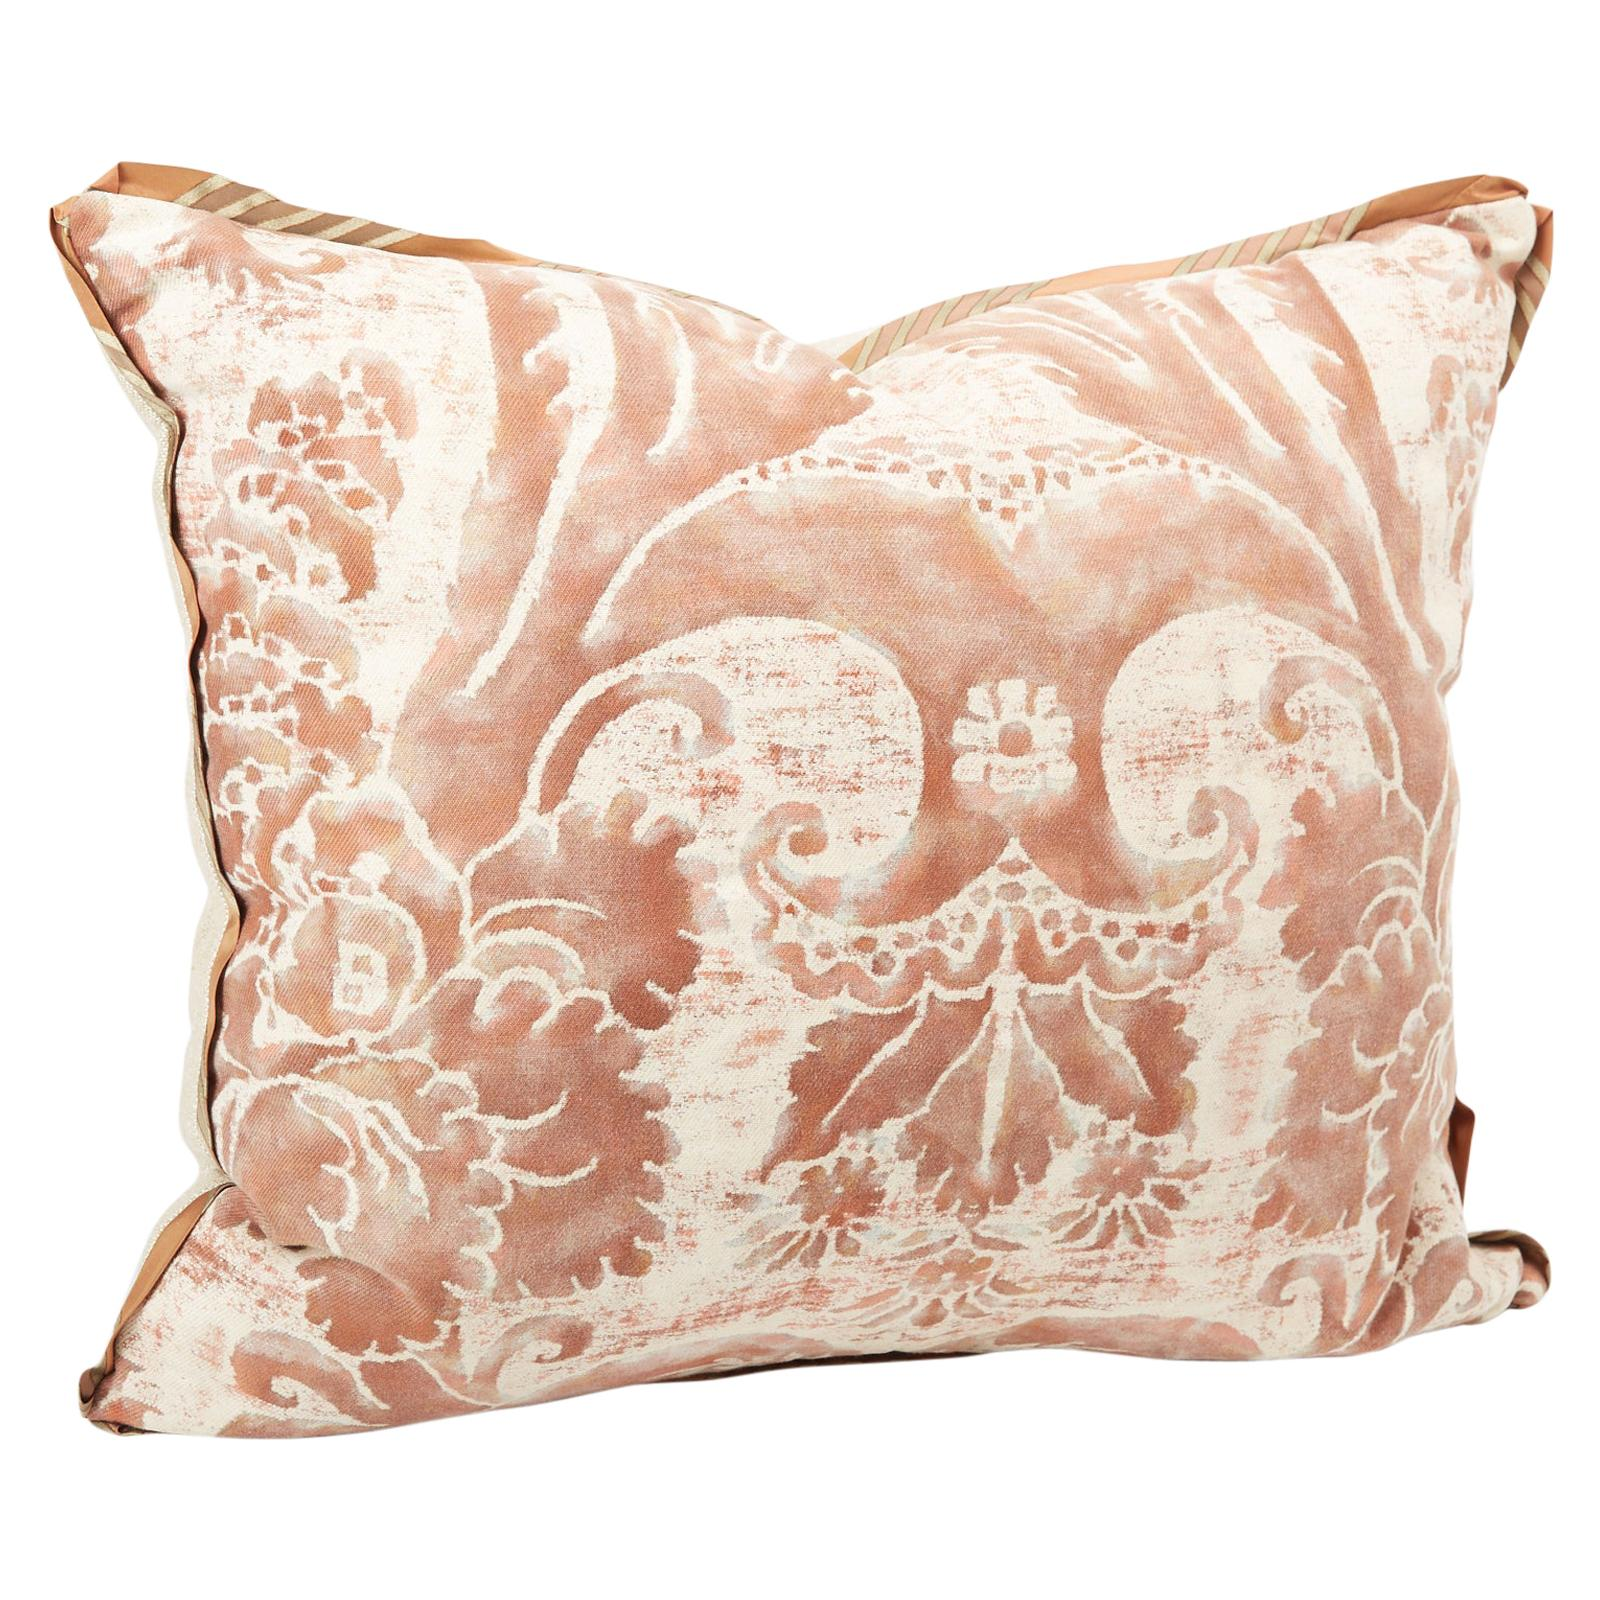 Fortuny Fabric Cushion in the Glicine Pattern, Newly Made with Vintage Fabric